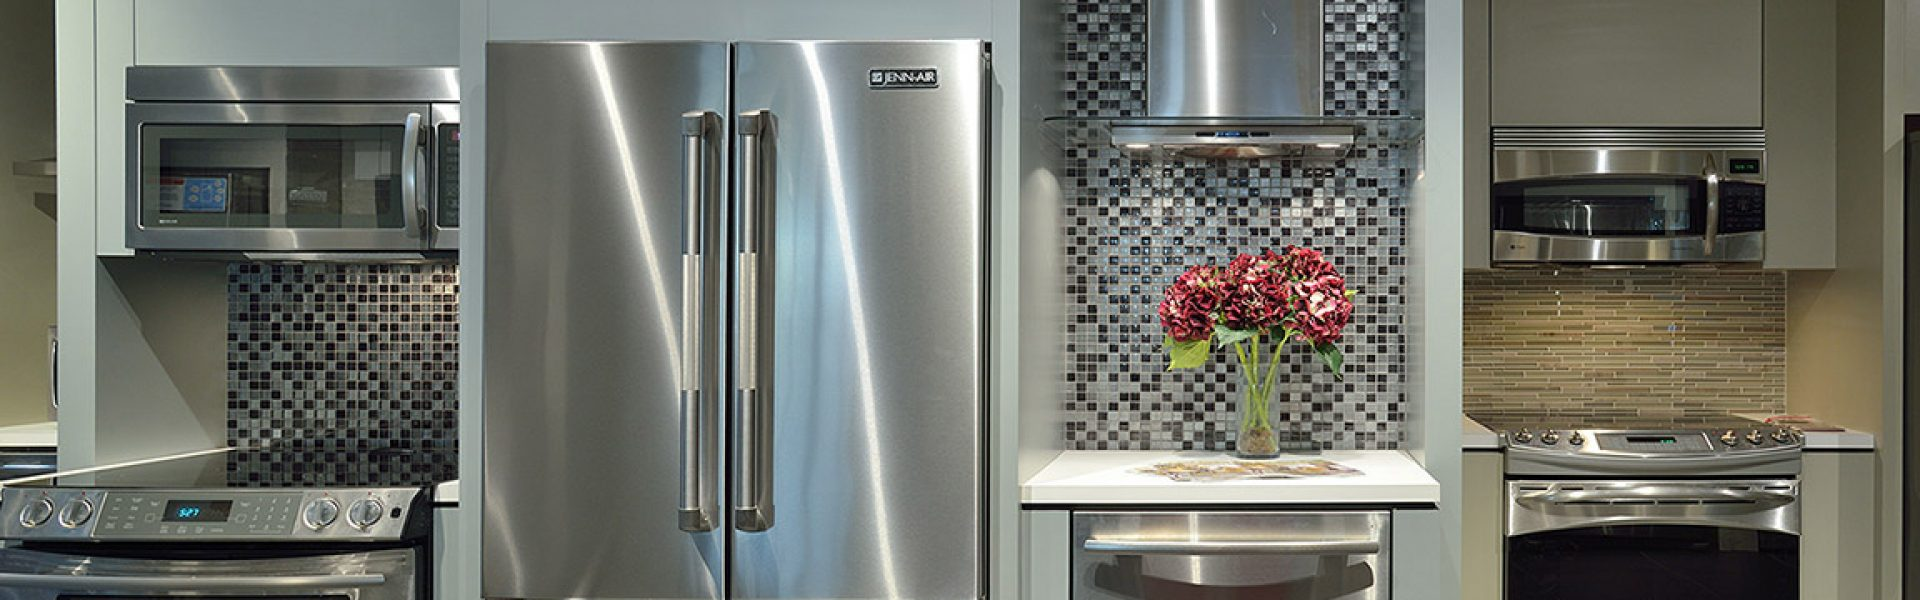 Appliance Repair Service Spring – Texas